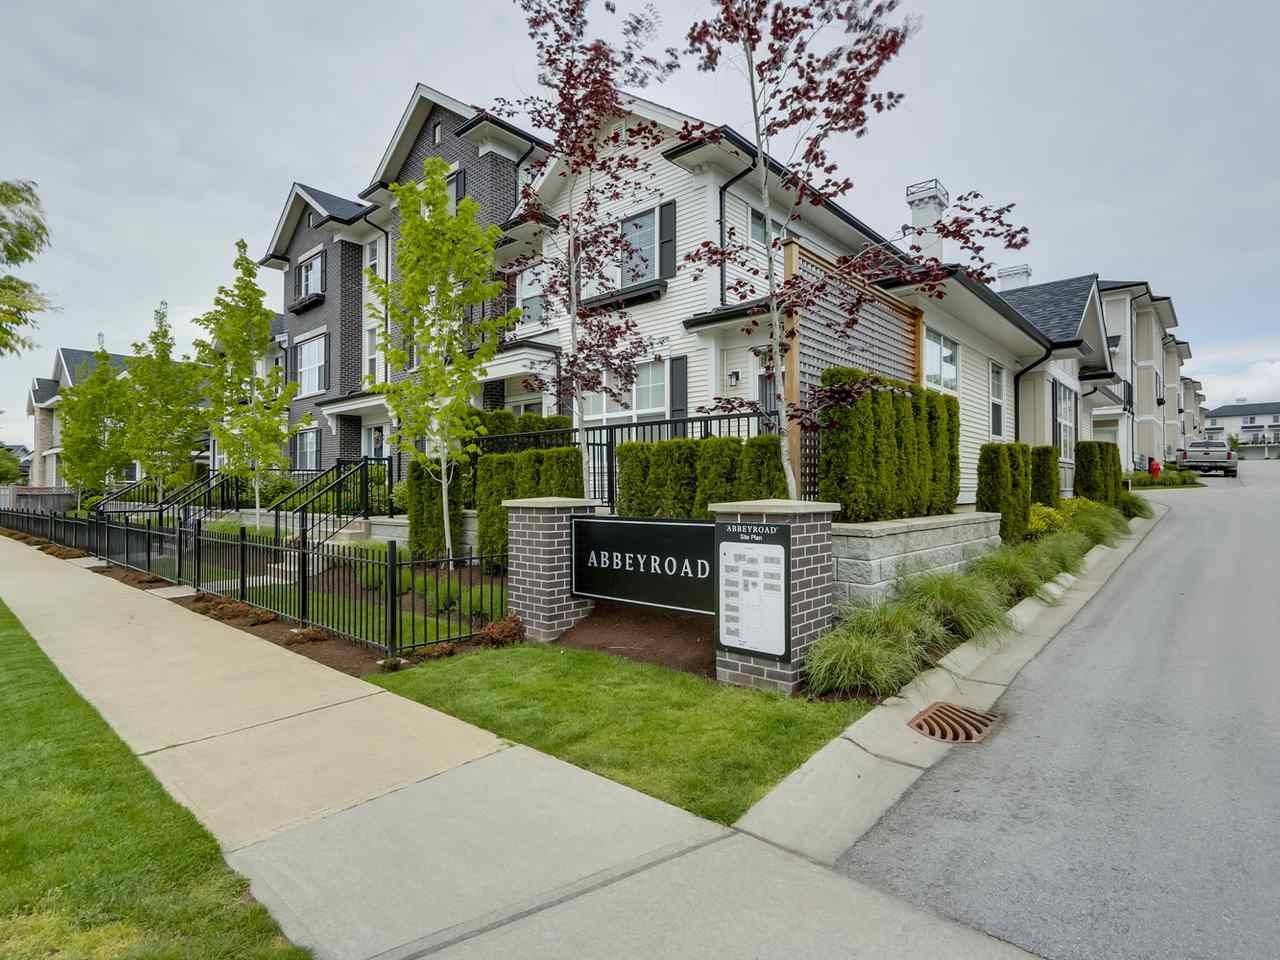 """Main Photo: 9 2469 164 Street in Surrey: Grandview Surrey Townhouse for sale in """"Abby Road"""" (South Surrey White Rock)  : MLS®# R2063728"""